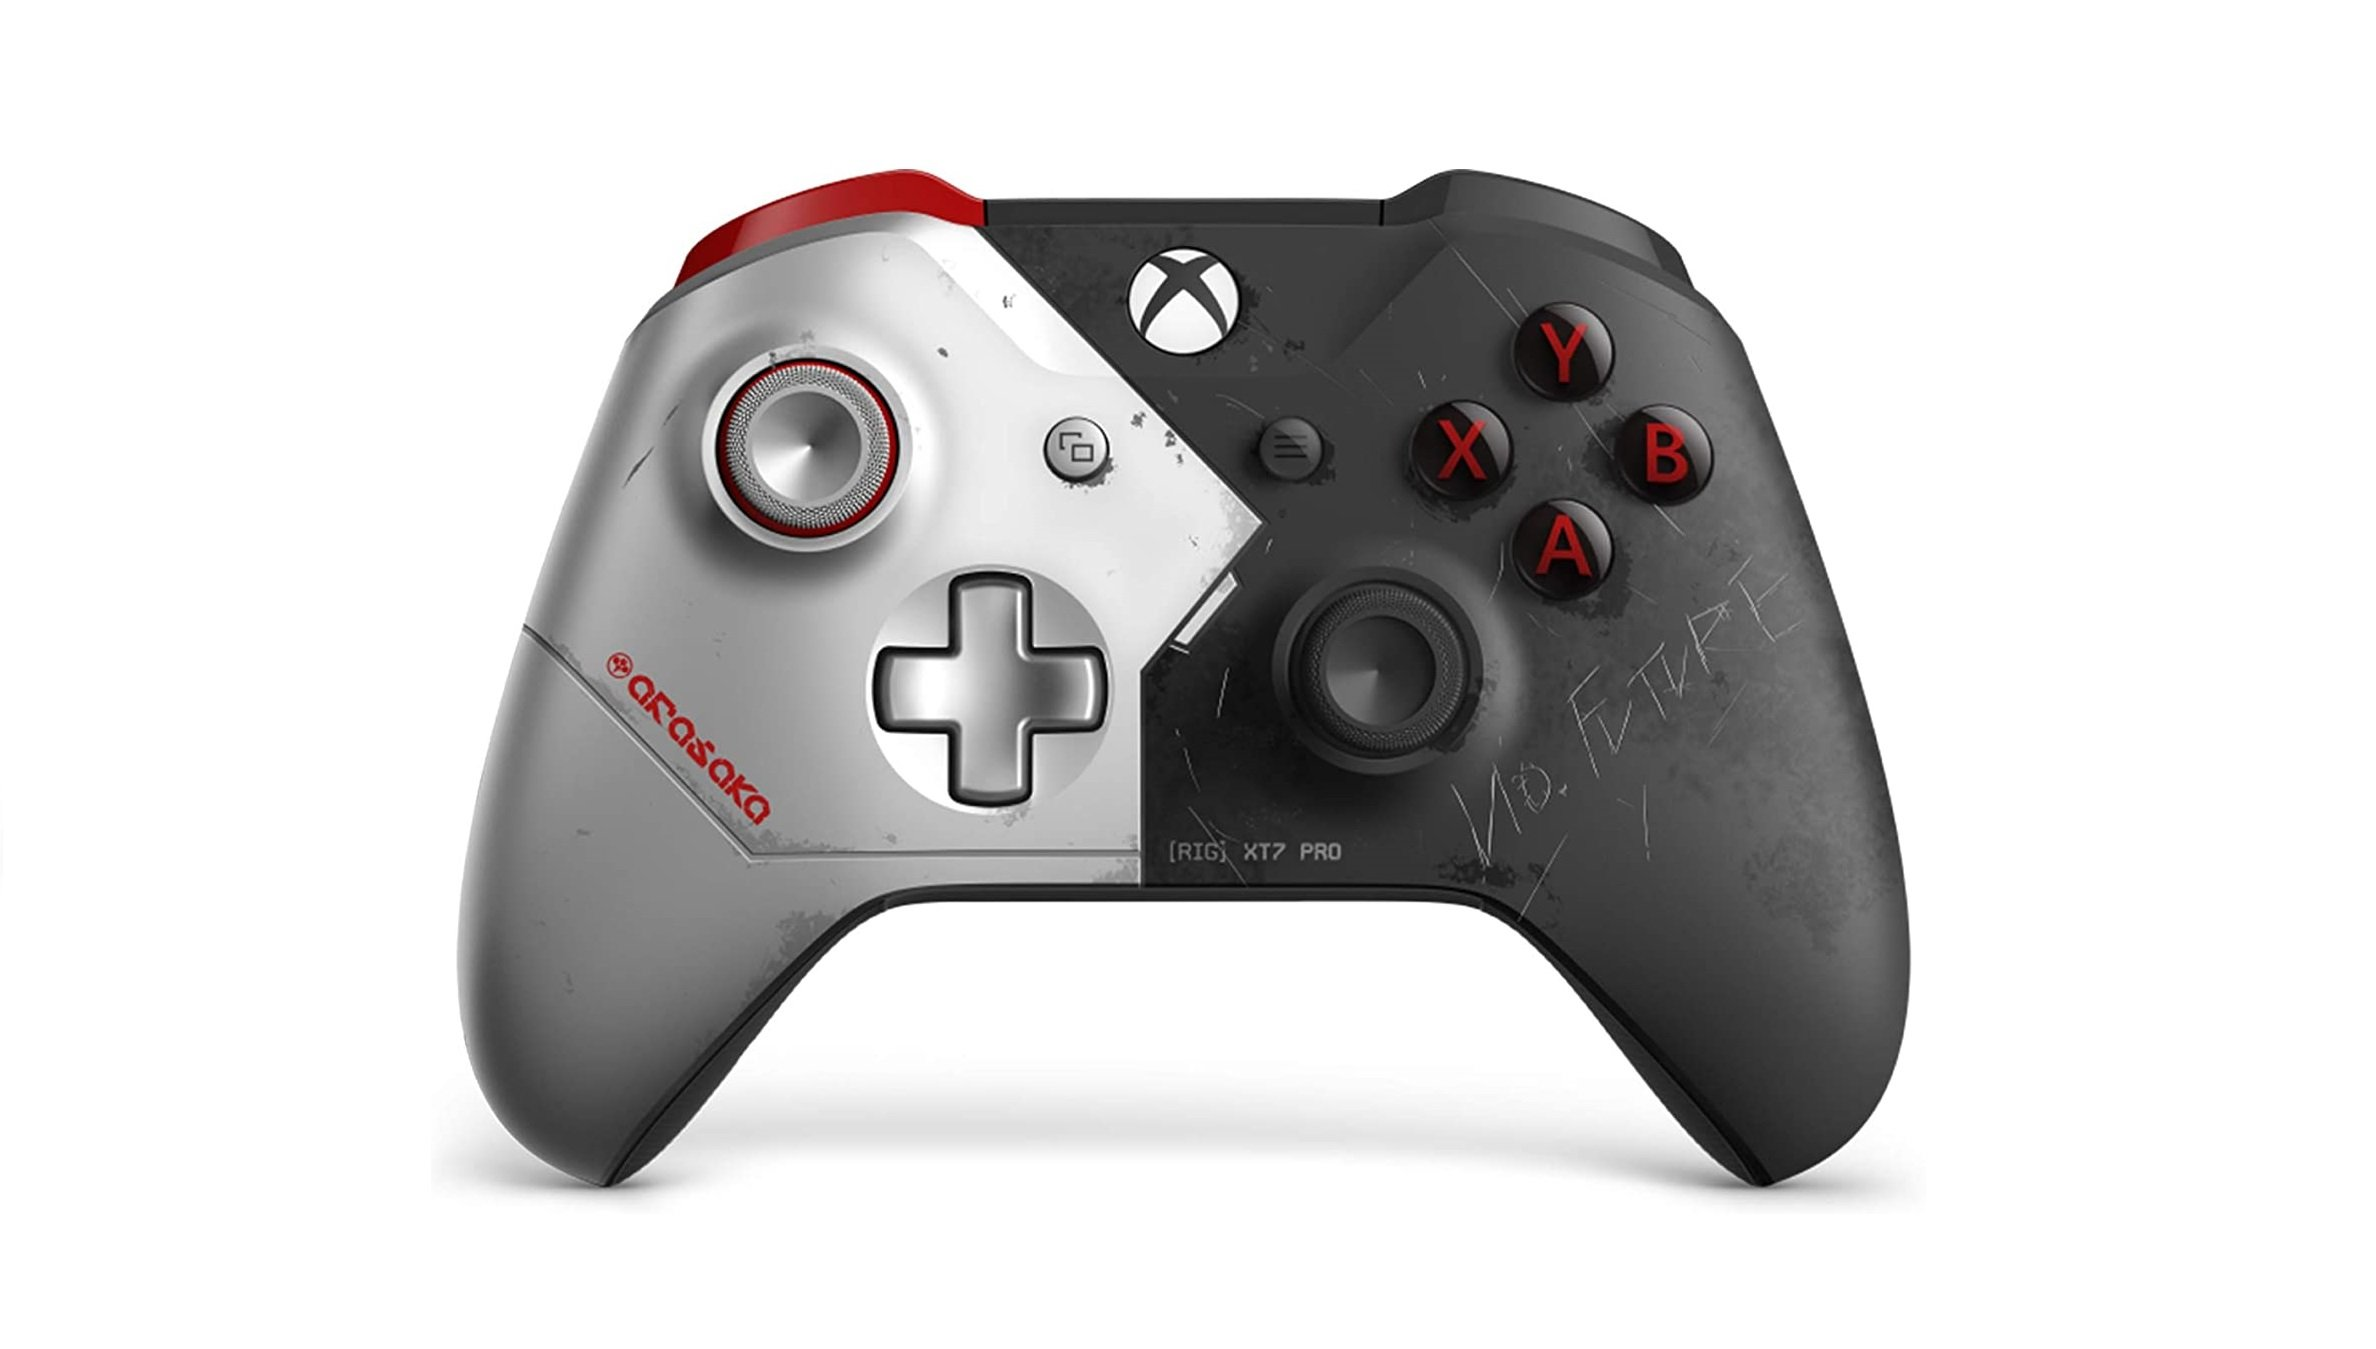 Cyberpunk 2077 Limited Edition Xbox One controller